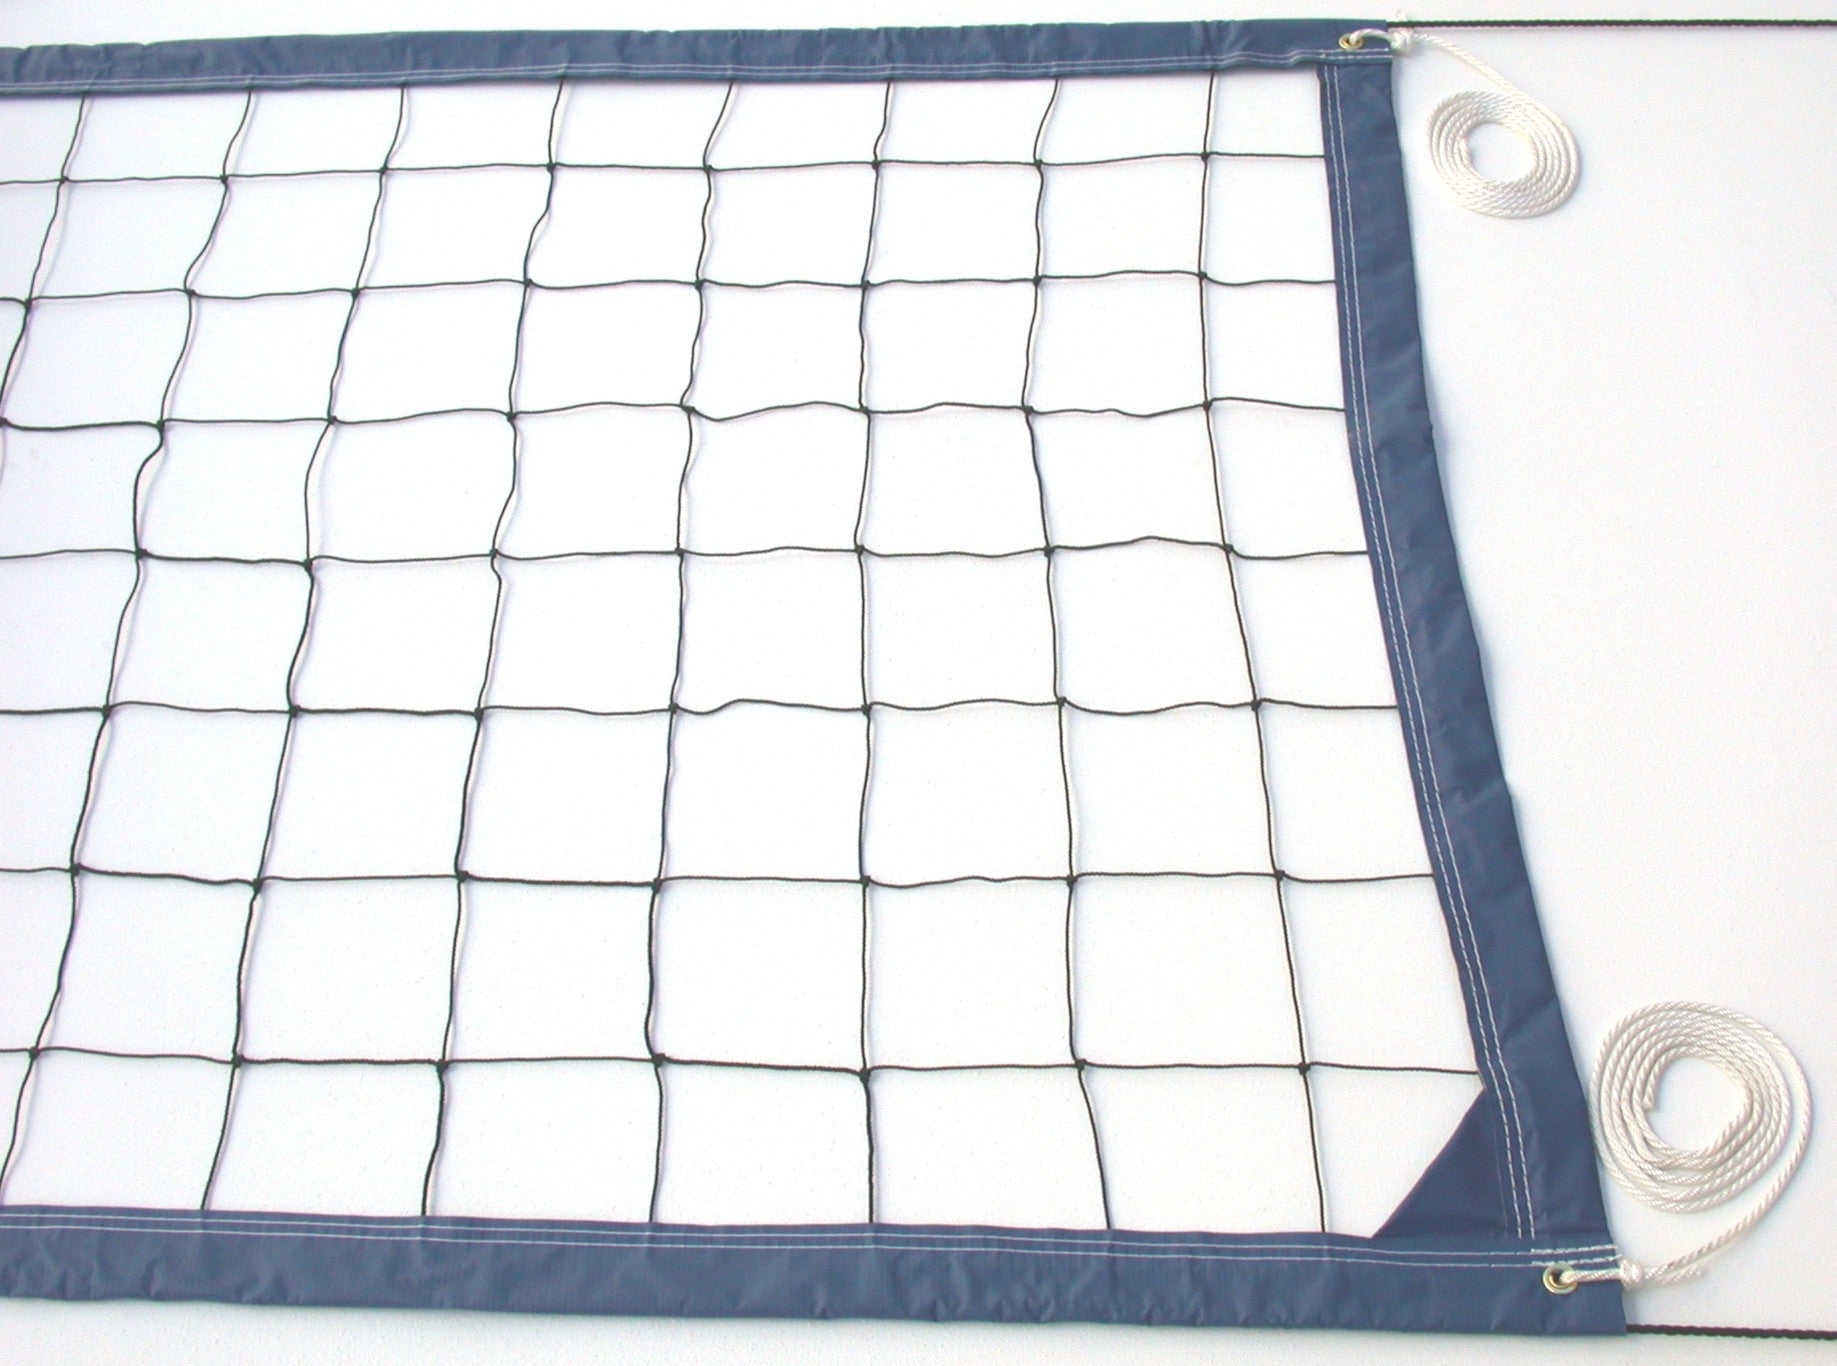 Deluxe Pool Volleyball Net Shop Online Now